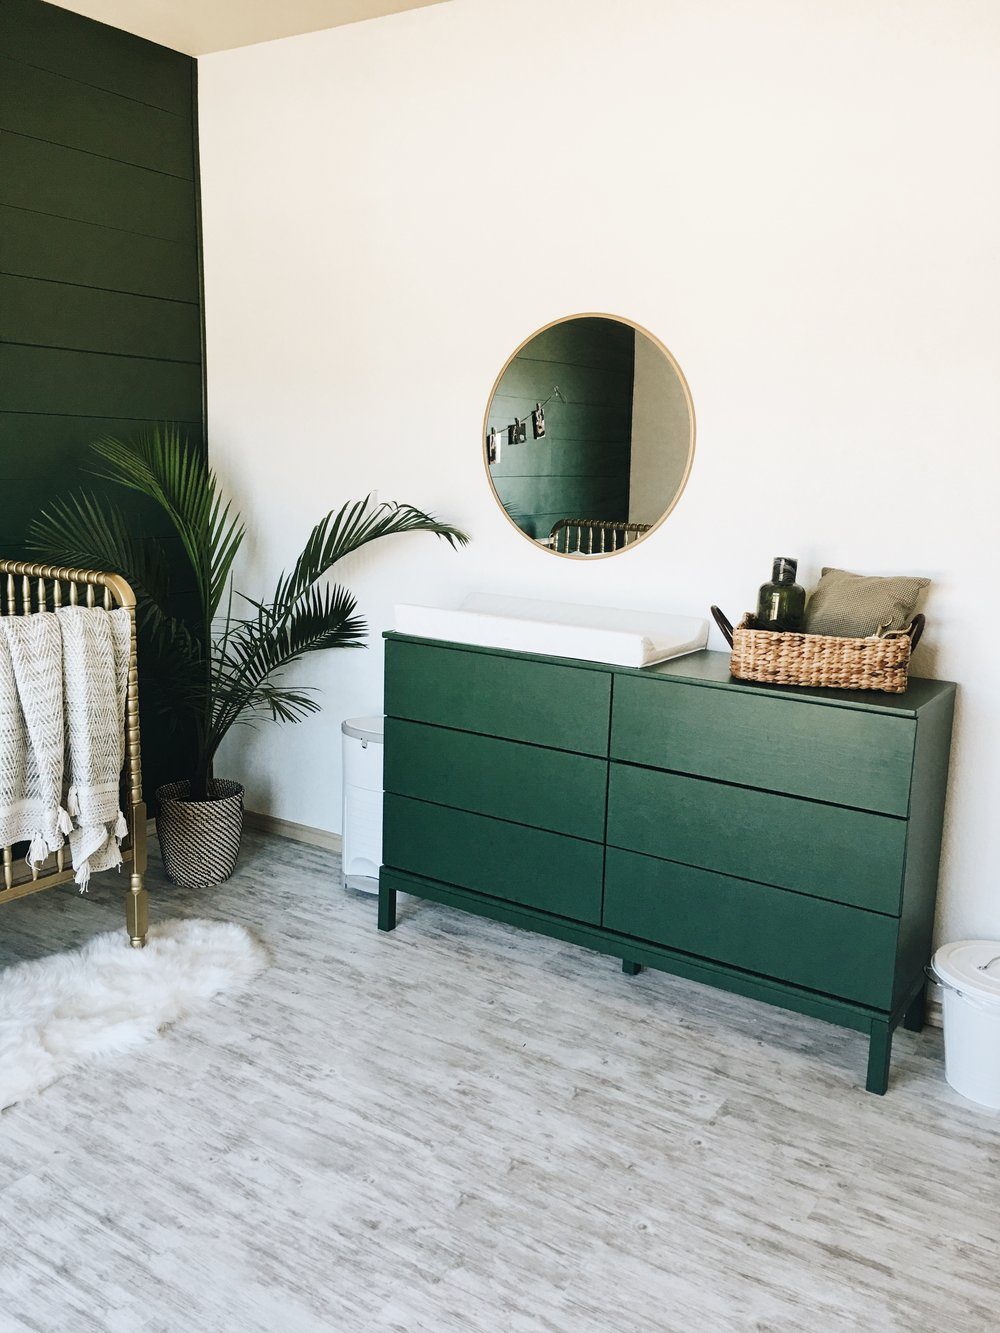 Dresser painted emerald to tie into wall - we are anxiously waiting for the gold hardware to arrive